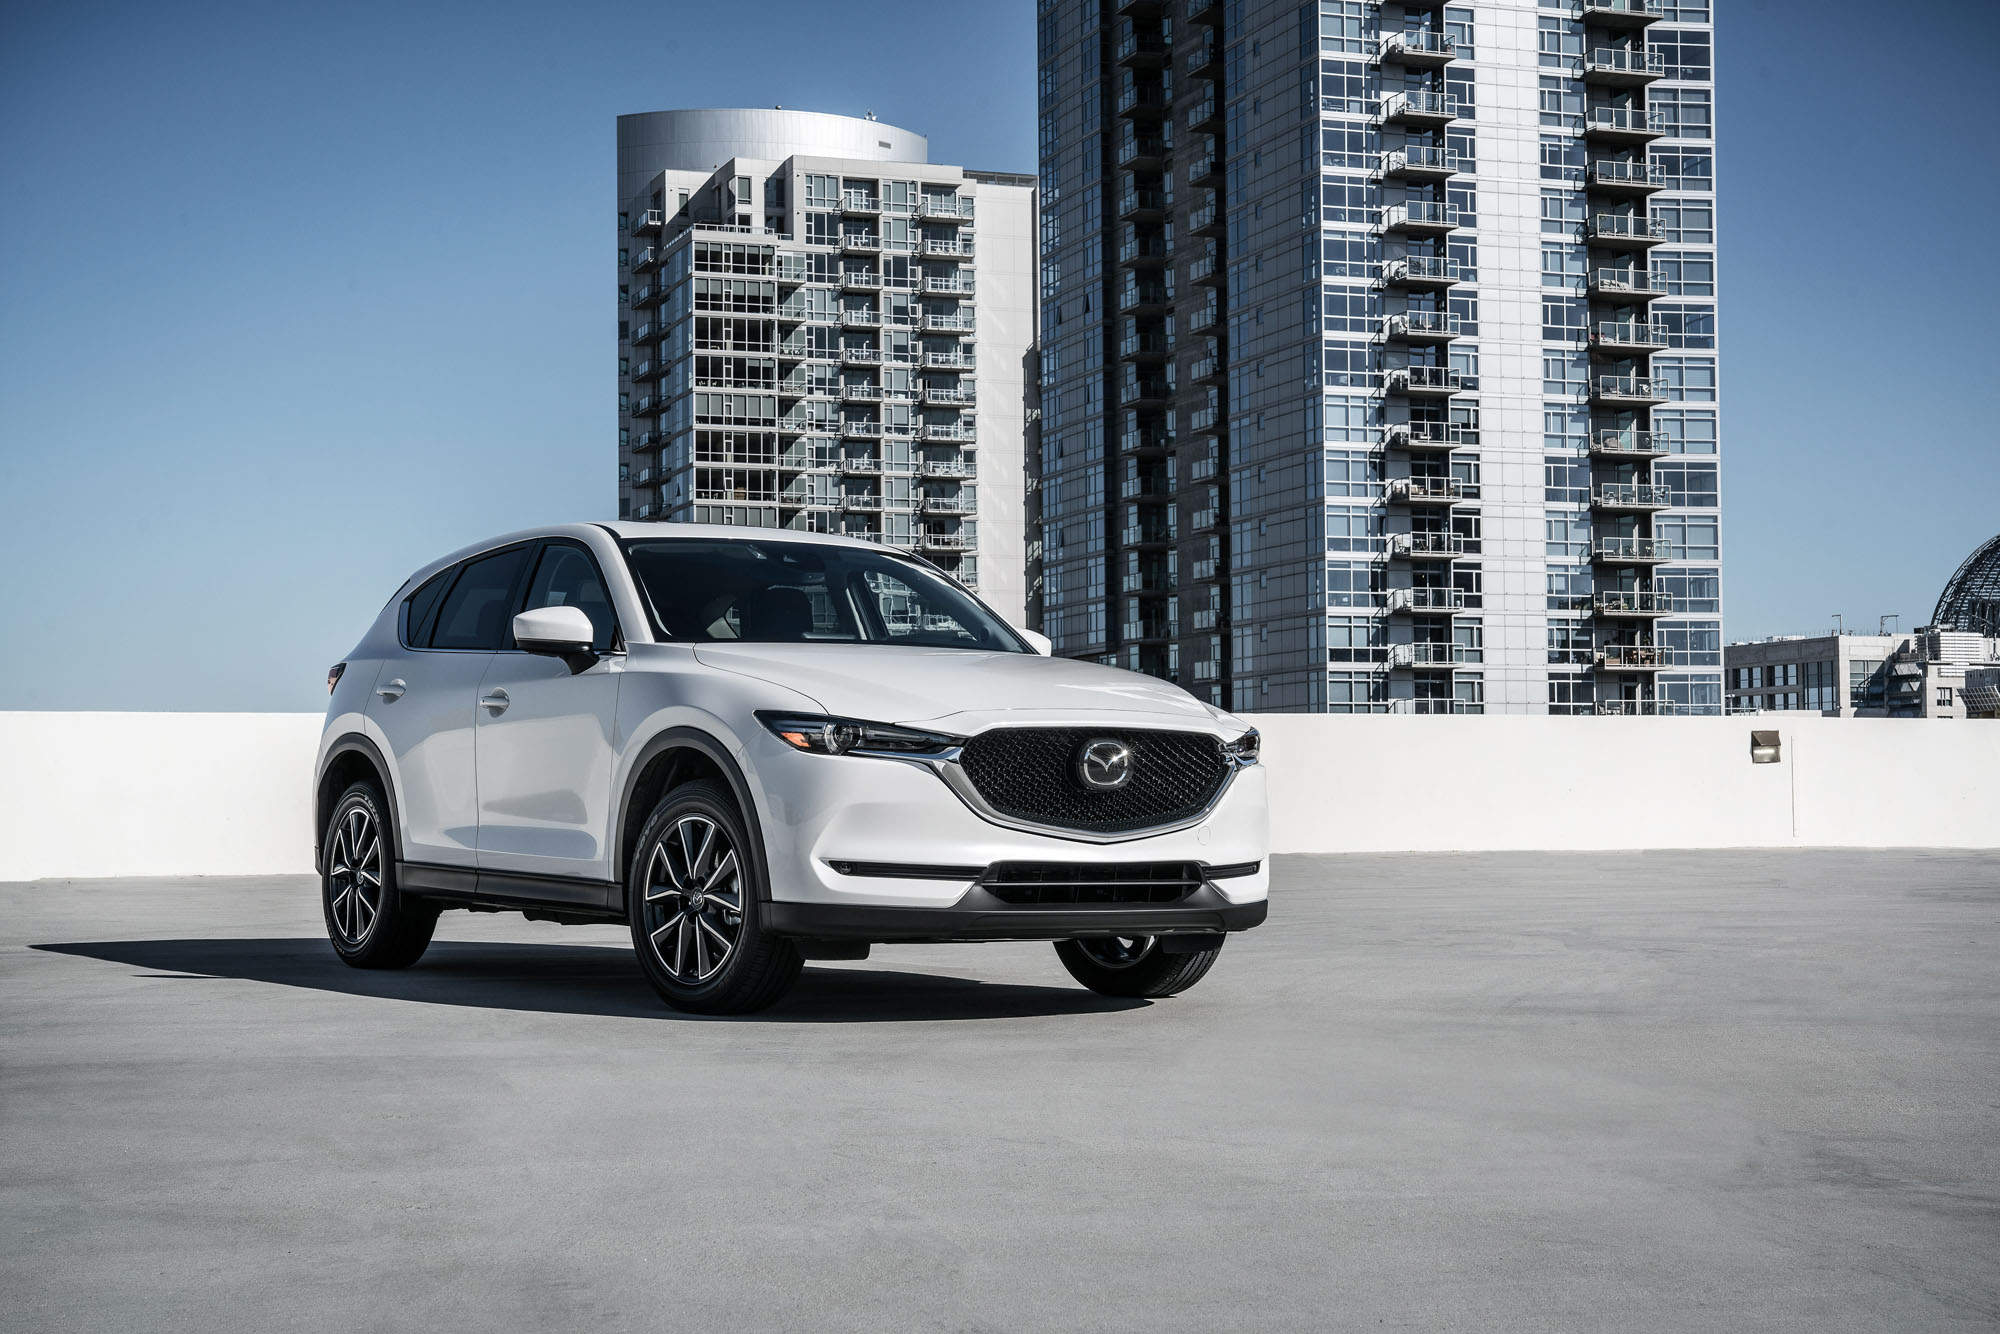 2019 Mazda Cx 5 At A Glance Motor Illustrated